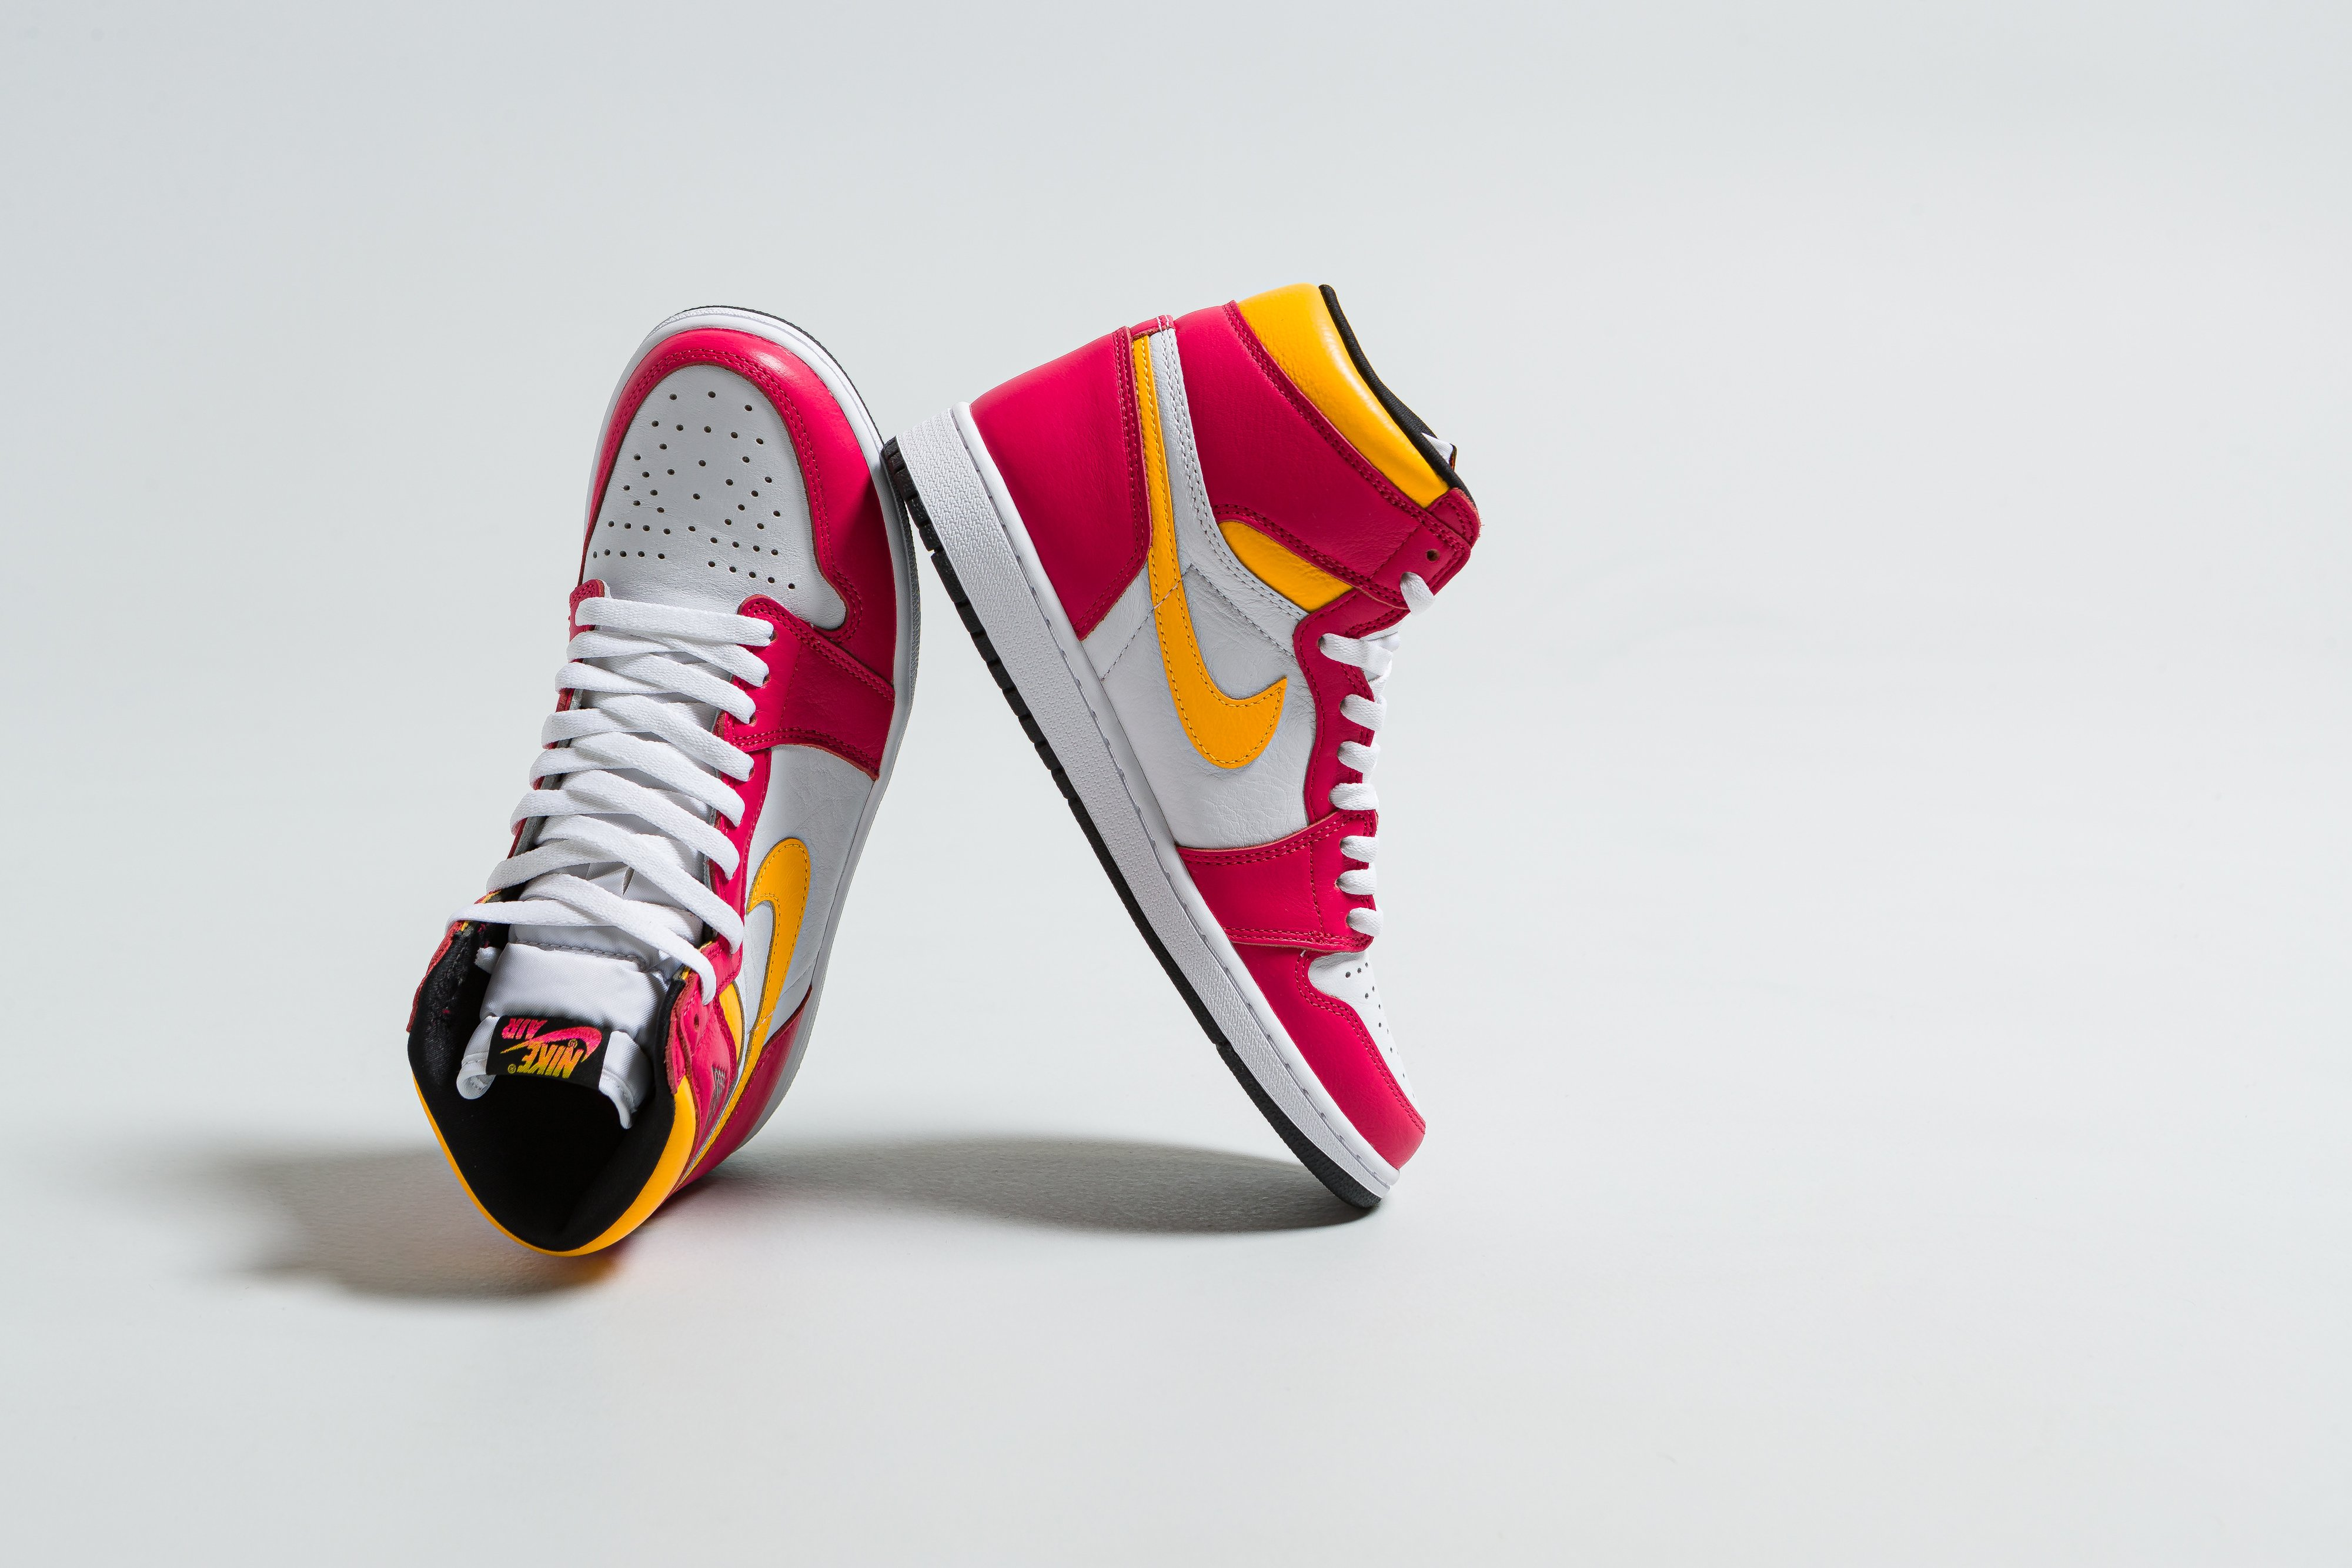 Up There Launches - Nike Air Jordan 1 'Light Fusion Red'